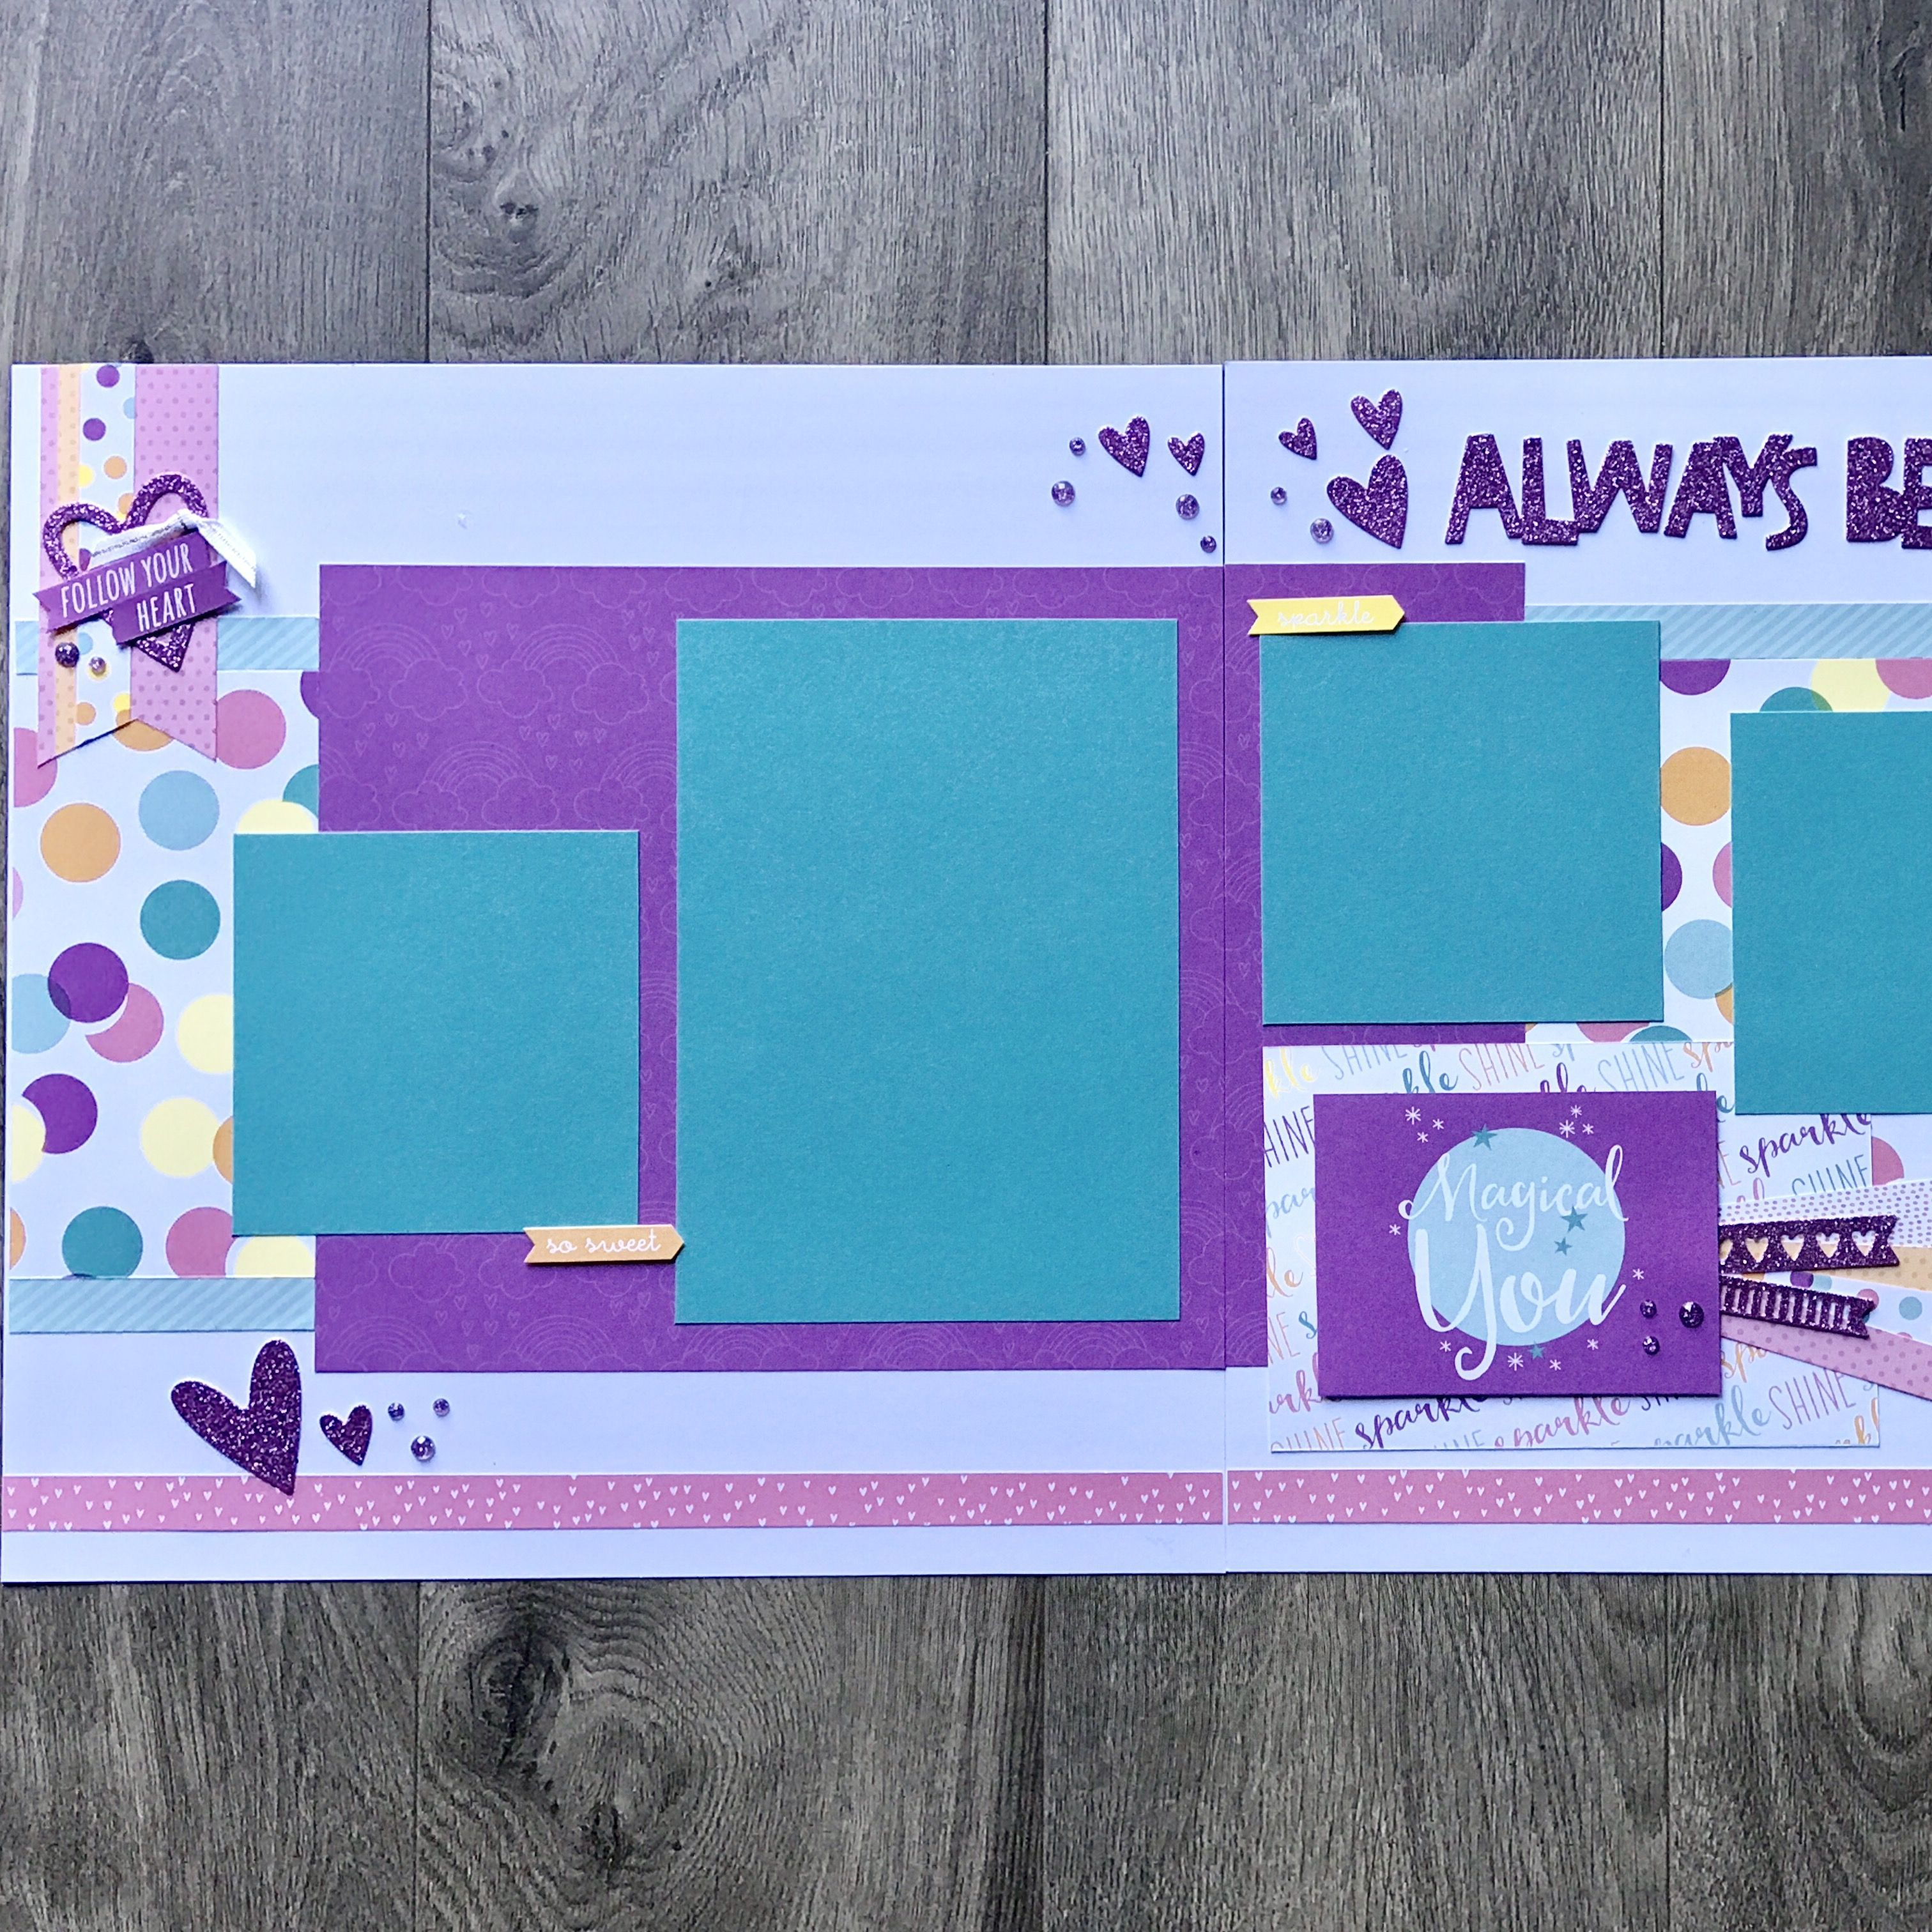 10 Fashionable 2 Page Scrapbook Layout Ideas 24 inspired photo of scrapbooking layouts ideas 2 page 2021